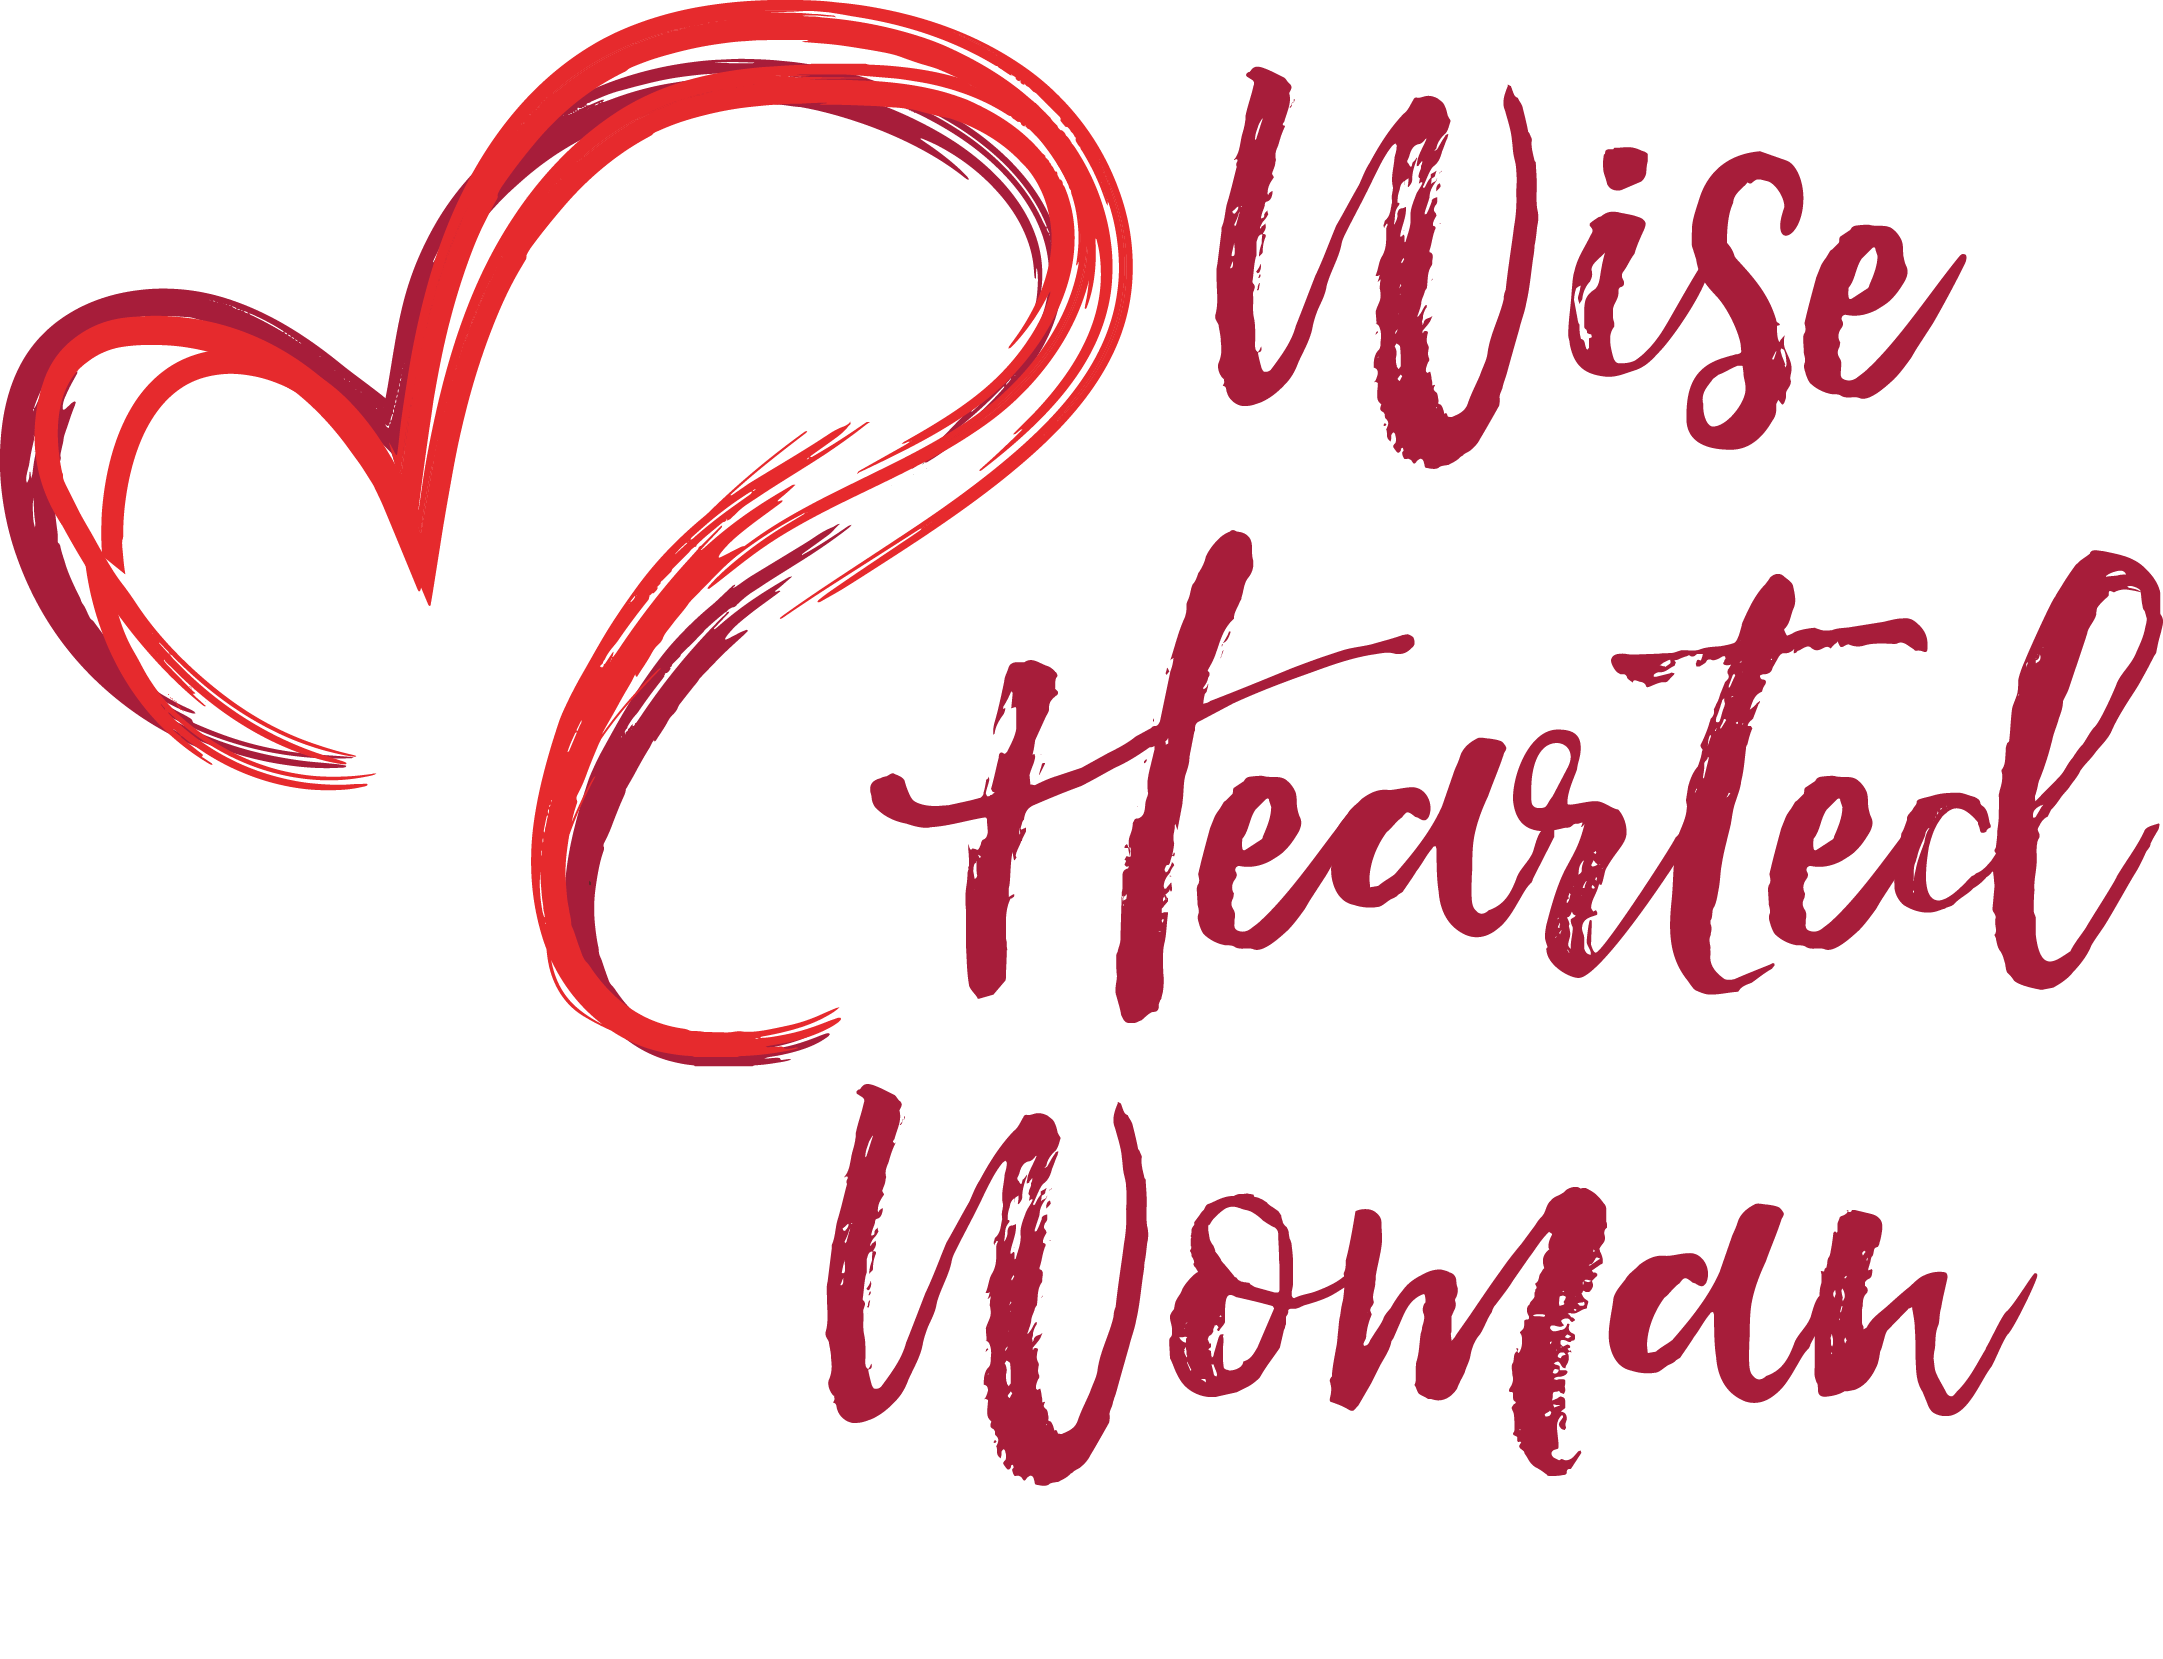 Calligraphy heart clipart image royalty free Wise Hearted Woman   Embrace your body. Love your life. image royalty free